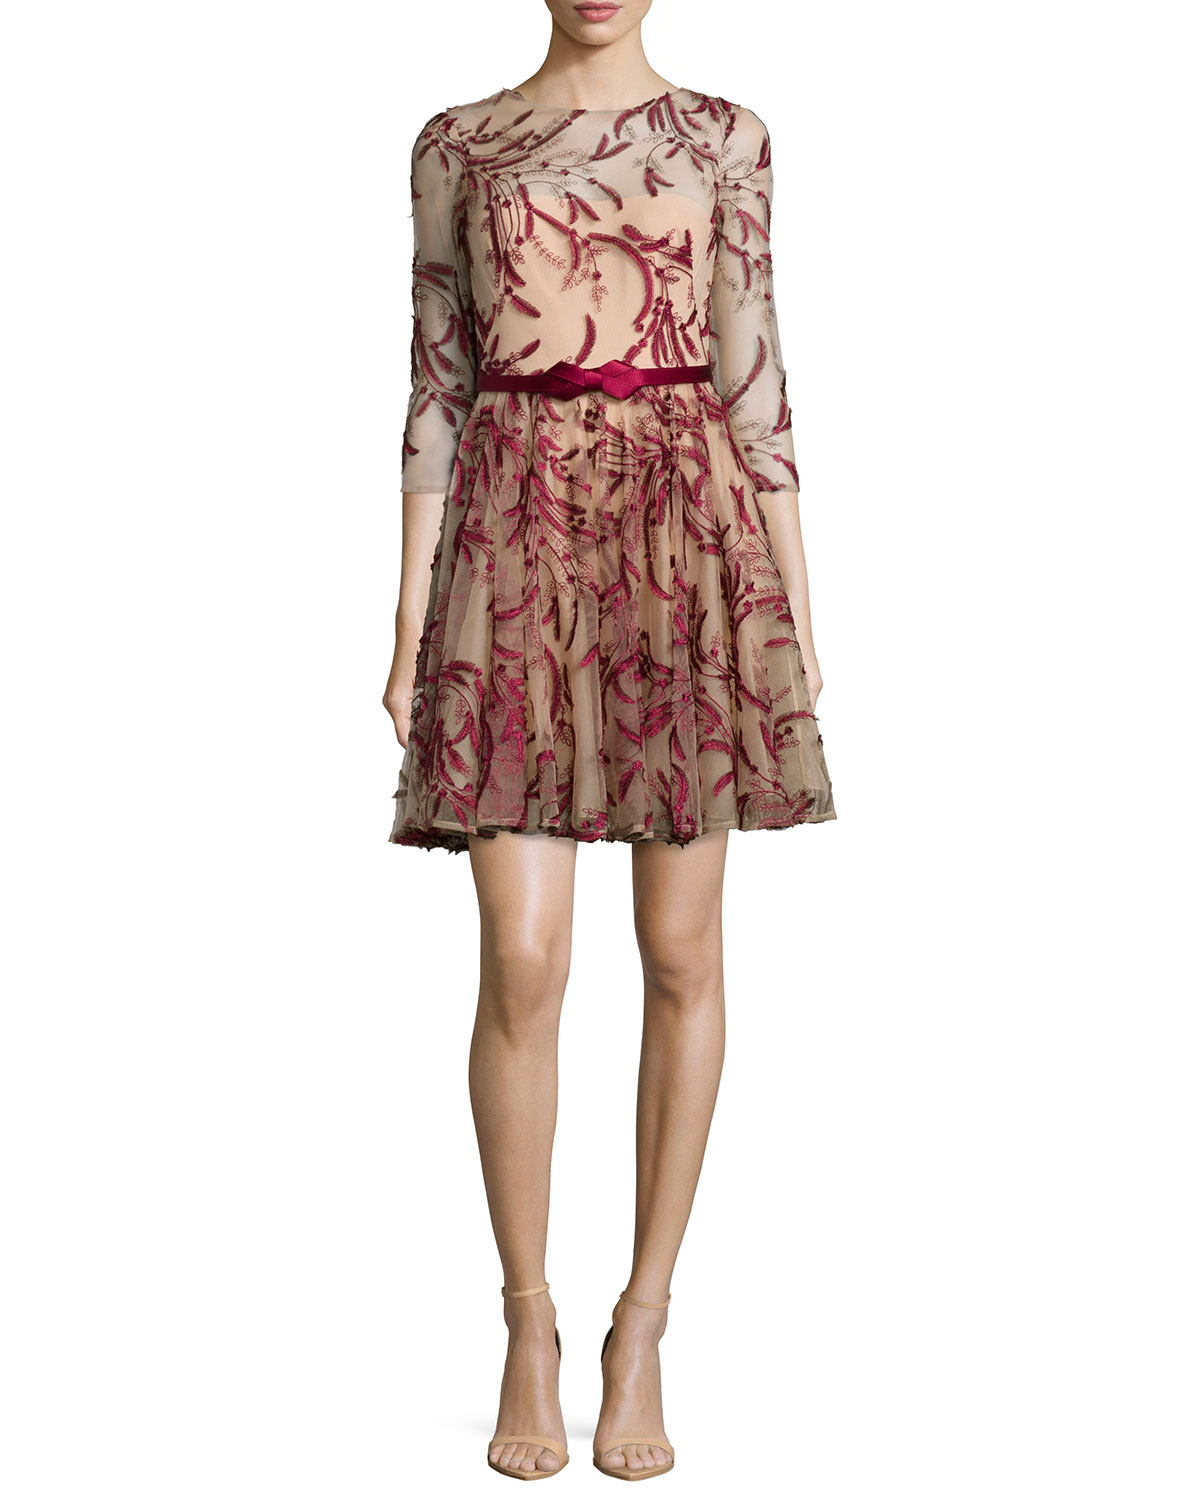 Marchesa Notte 3/4-Sleeve Tulle Fit-&-Flare Dress, Red, Size: 0